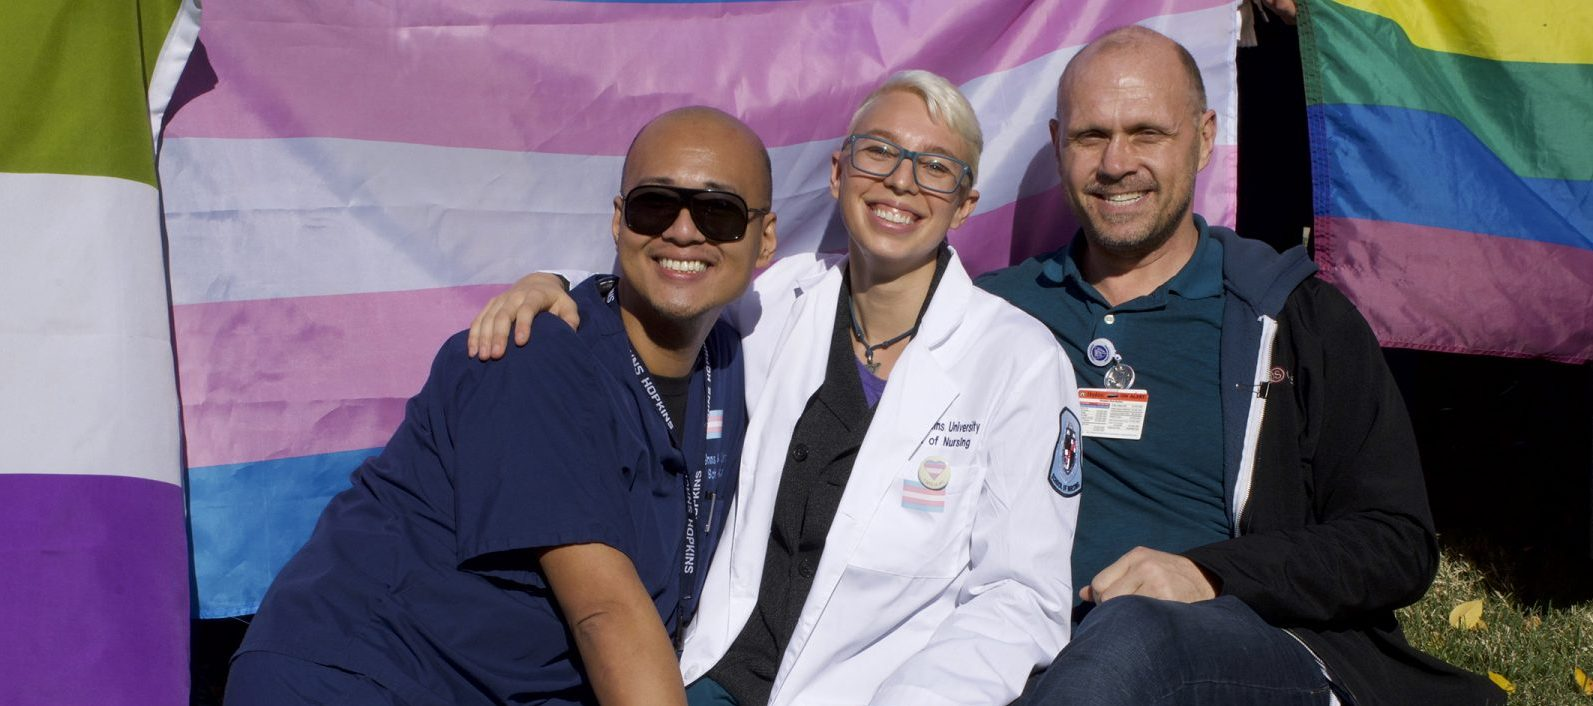 three people in front of the trans flag